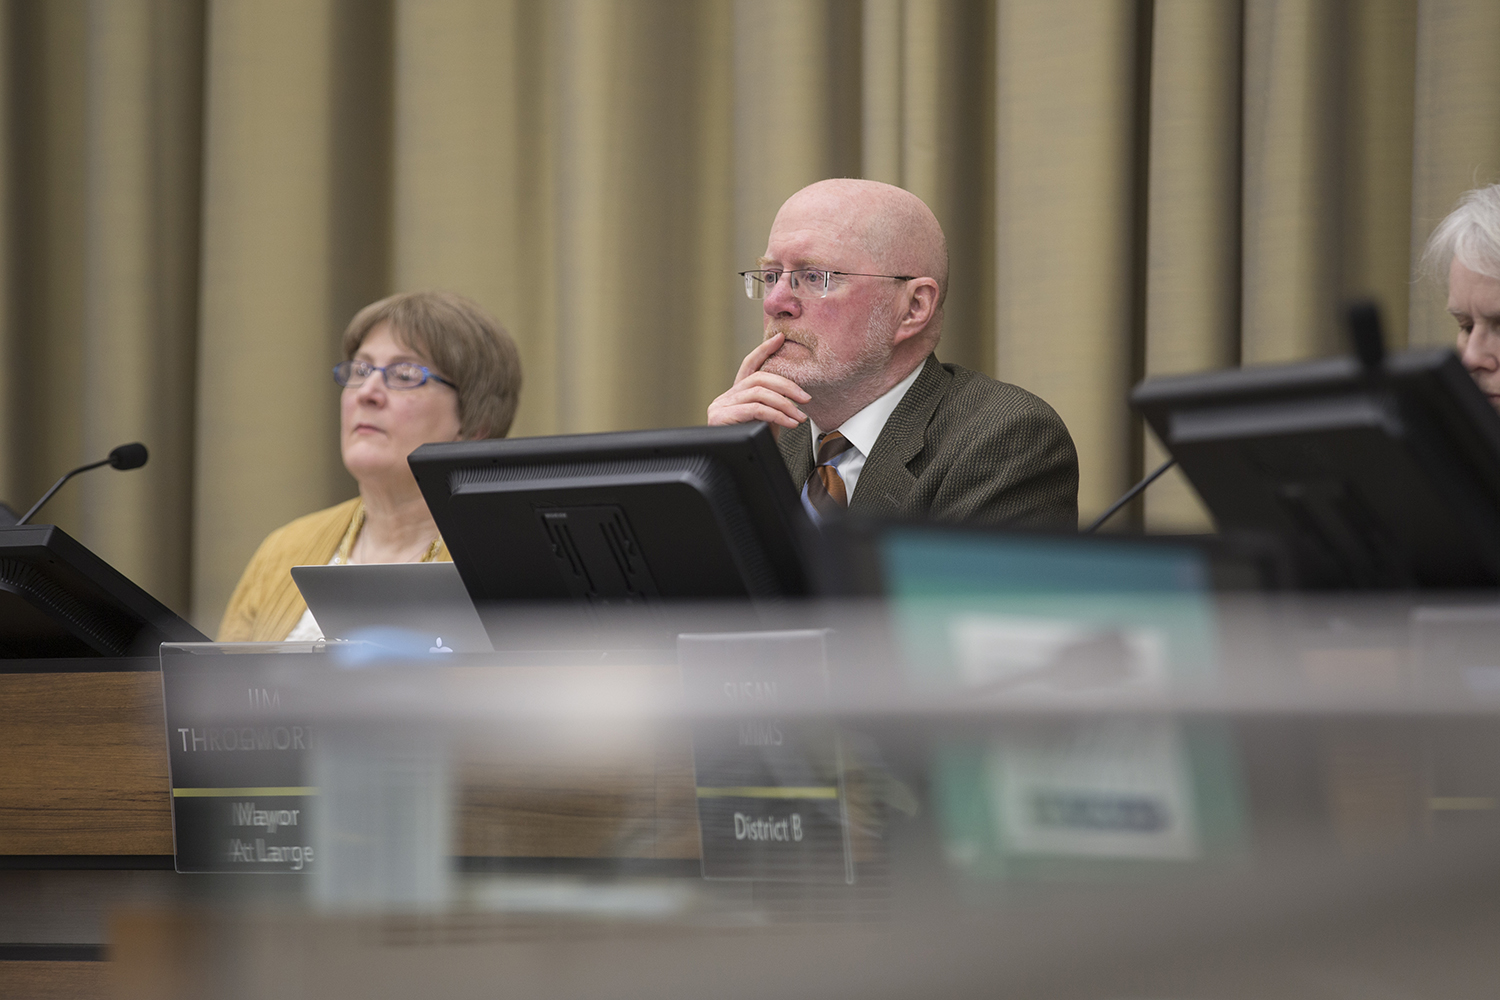 Iowa City Mayor Jim Throgmorton listens as community members address complaints regarding the new benches for the Pedestrian Mall at City Hall in Iowa City on Tuesday, January 22, 2019. Some community members feel that the new benches are hostile to the homeless.